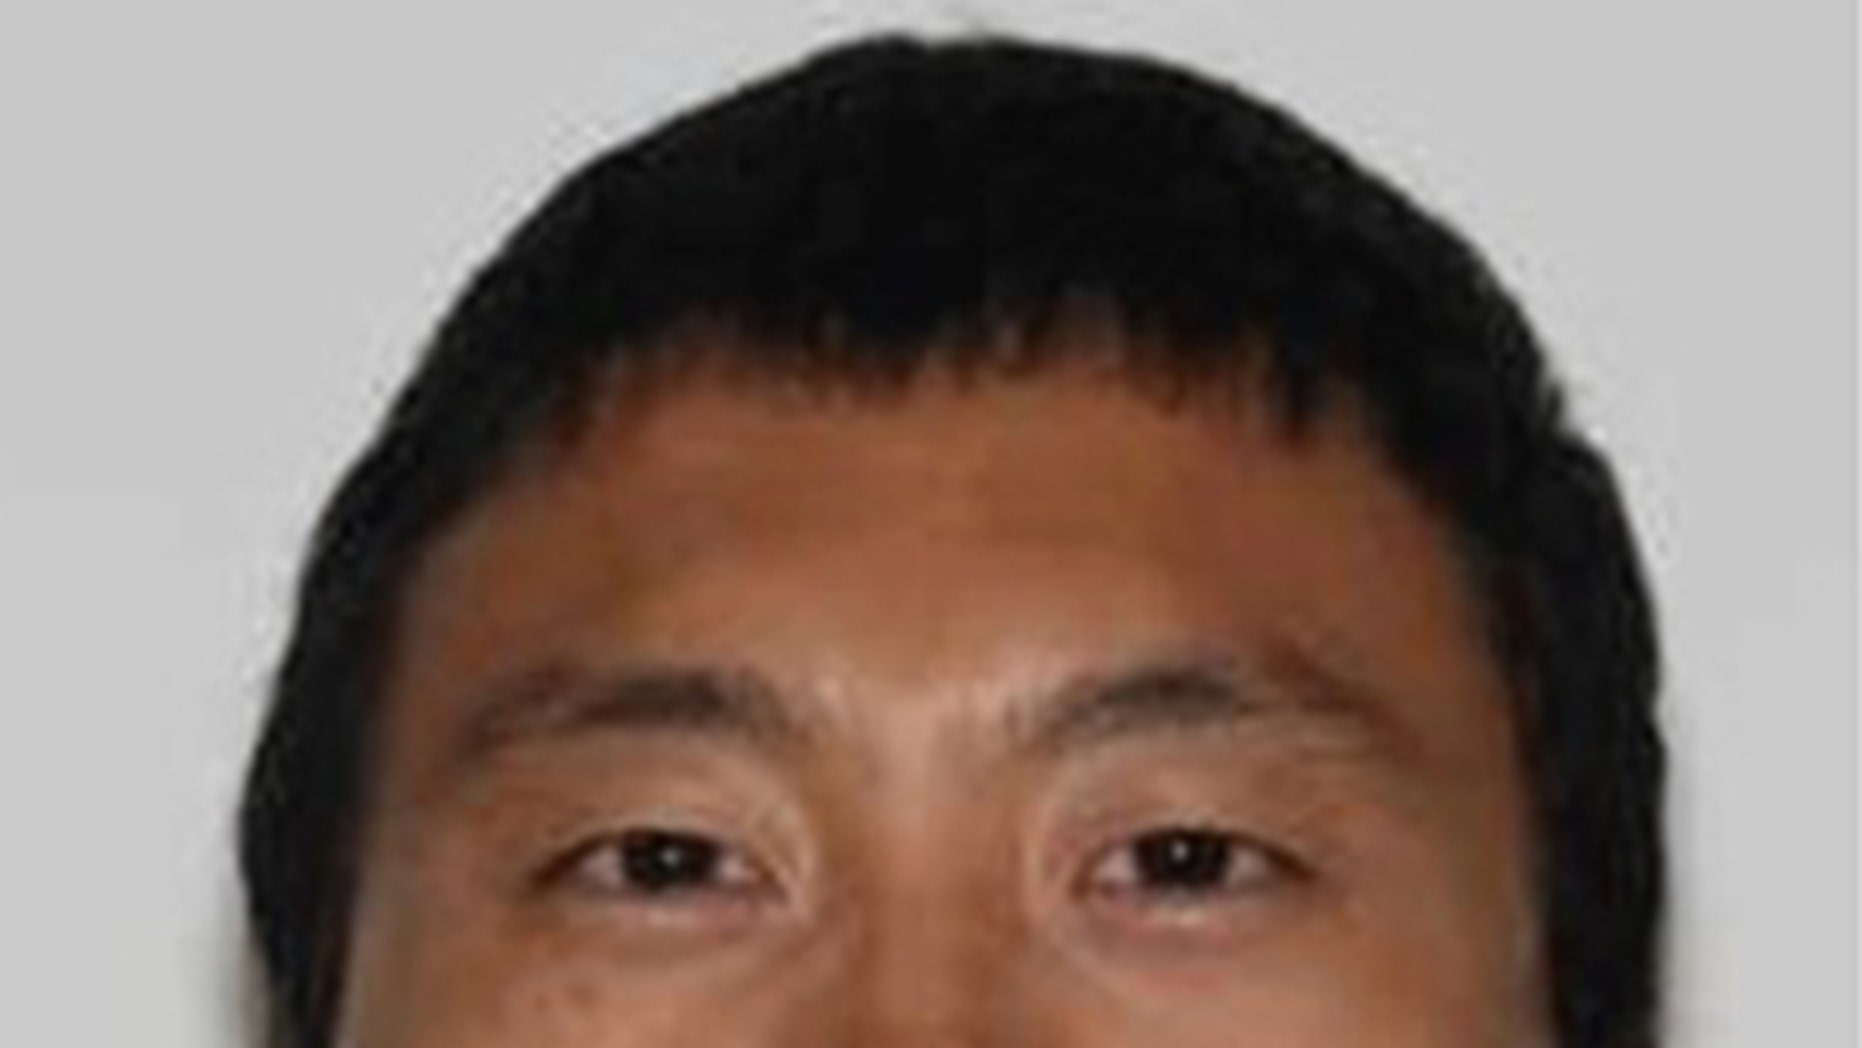 Yong Lu, 35, was arrested Saturday in Niagara Falls after allegedly chopping off his pregnant wife's arm and fingers late last week.